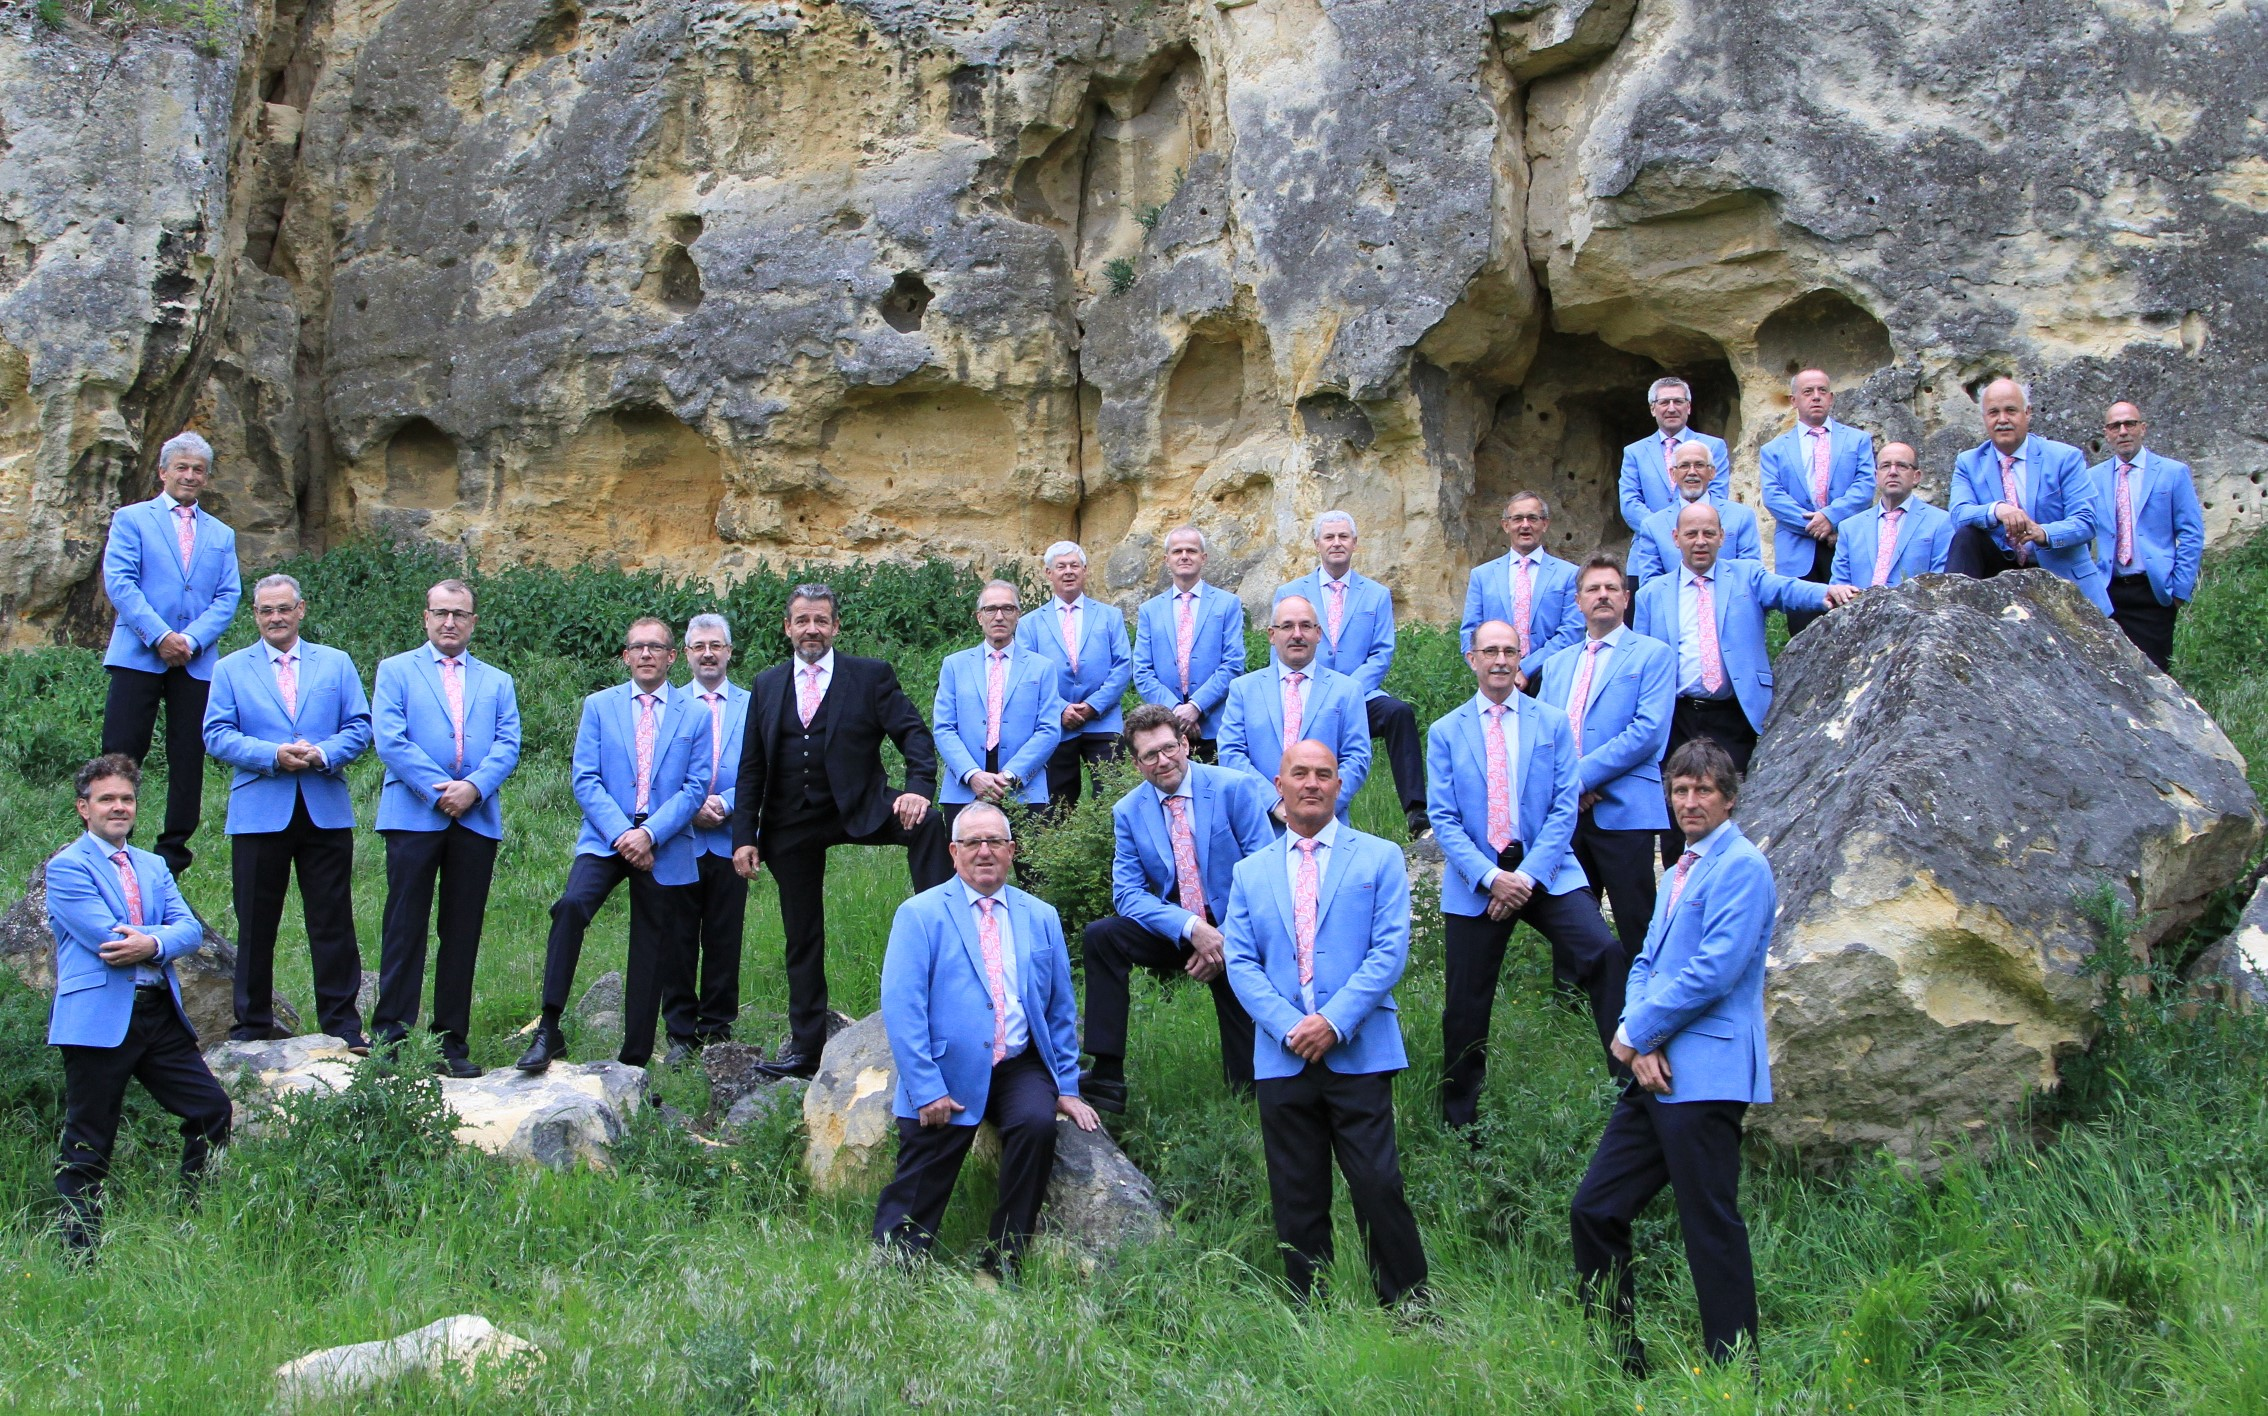 Mergelland Mannenkoor choir to visit Washington, D.C